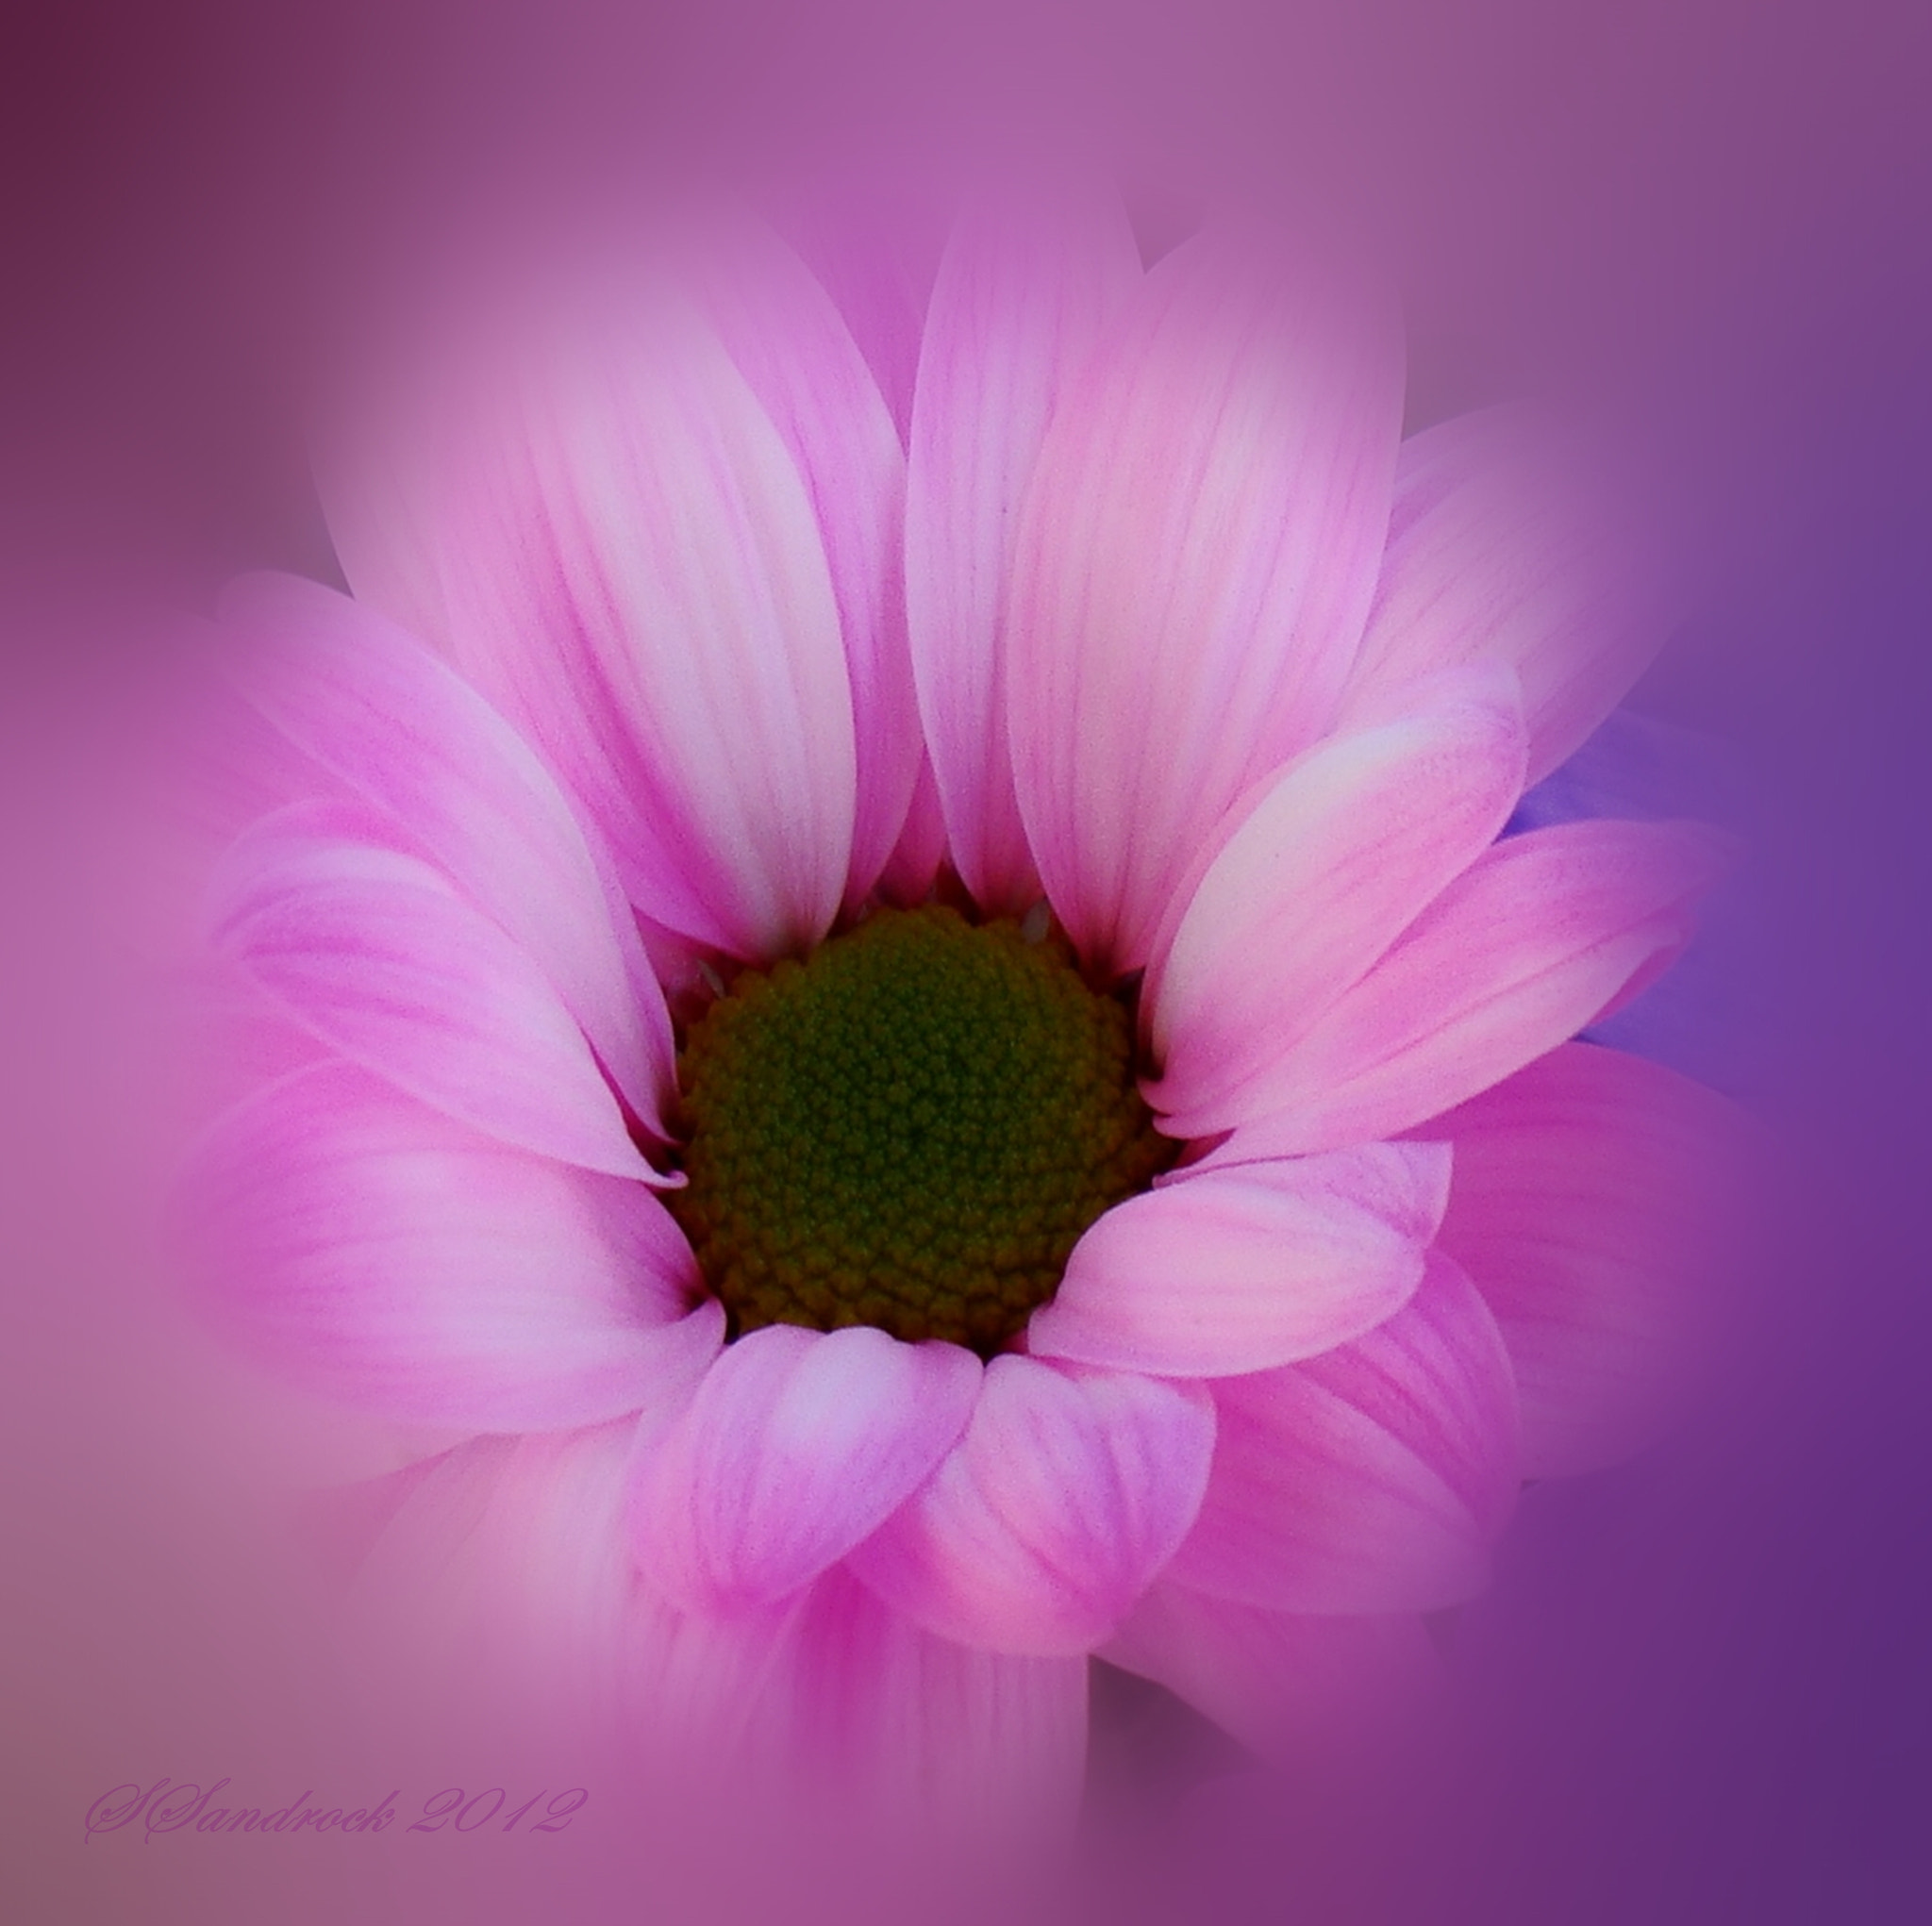 Photograph Pink Passion.... by Silvia Sandrock on 500px